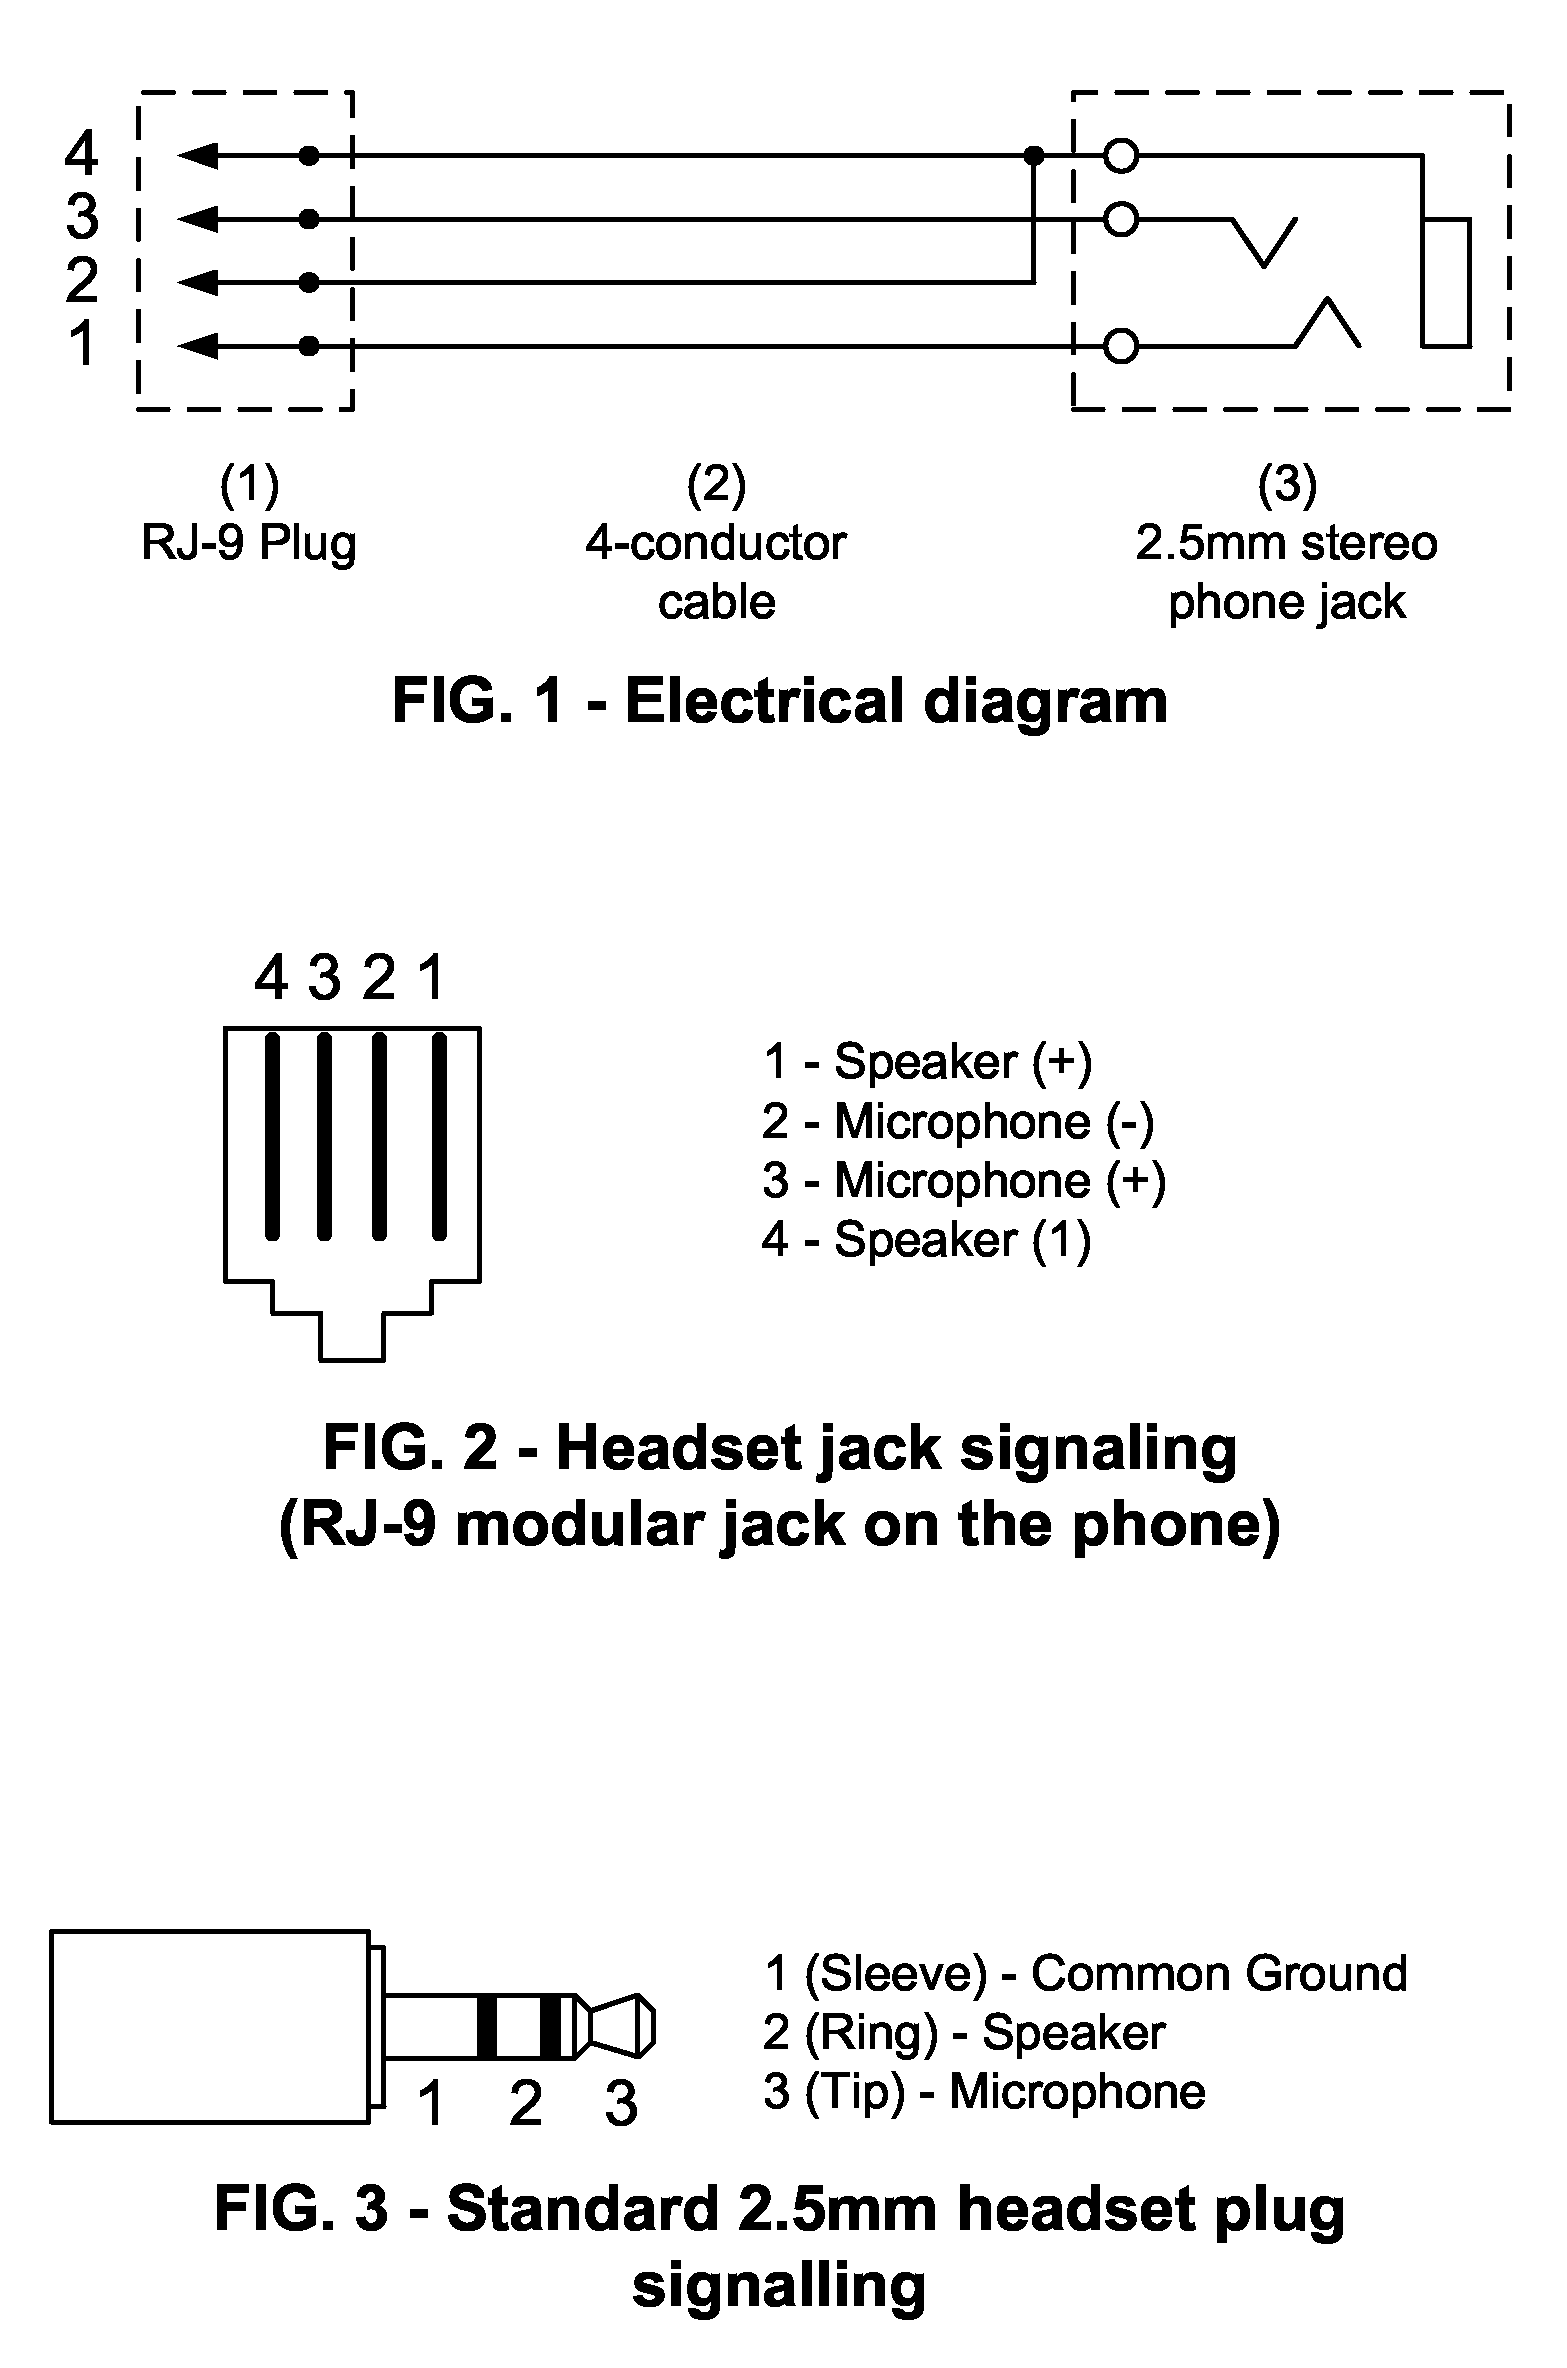 Lenovo Telefoon Patent Us20060234771 - Headset Adapter For Ip Or Digital